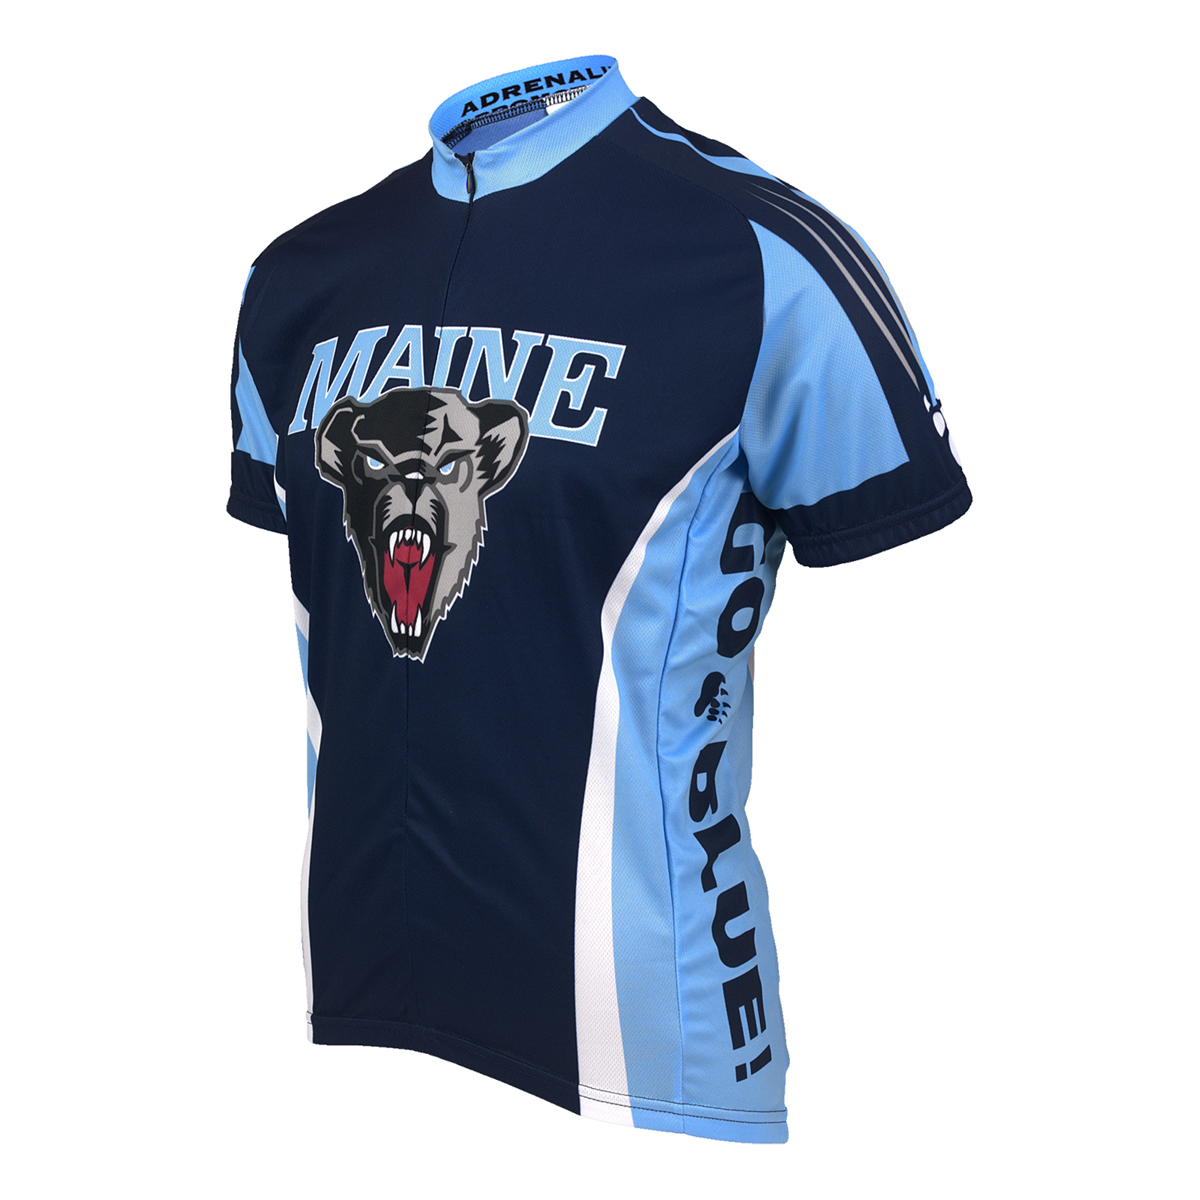 Image of Adrenaline Promotions University of Maine Bears Cycling Jersey